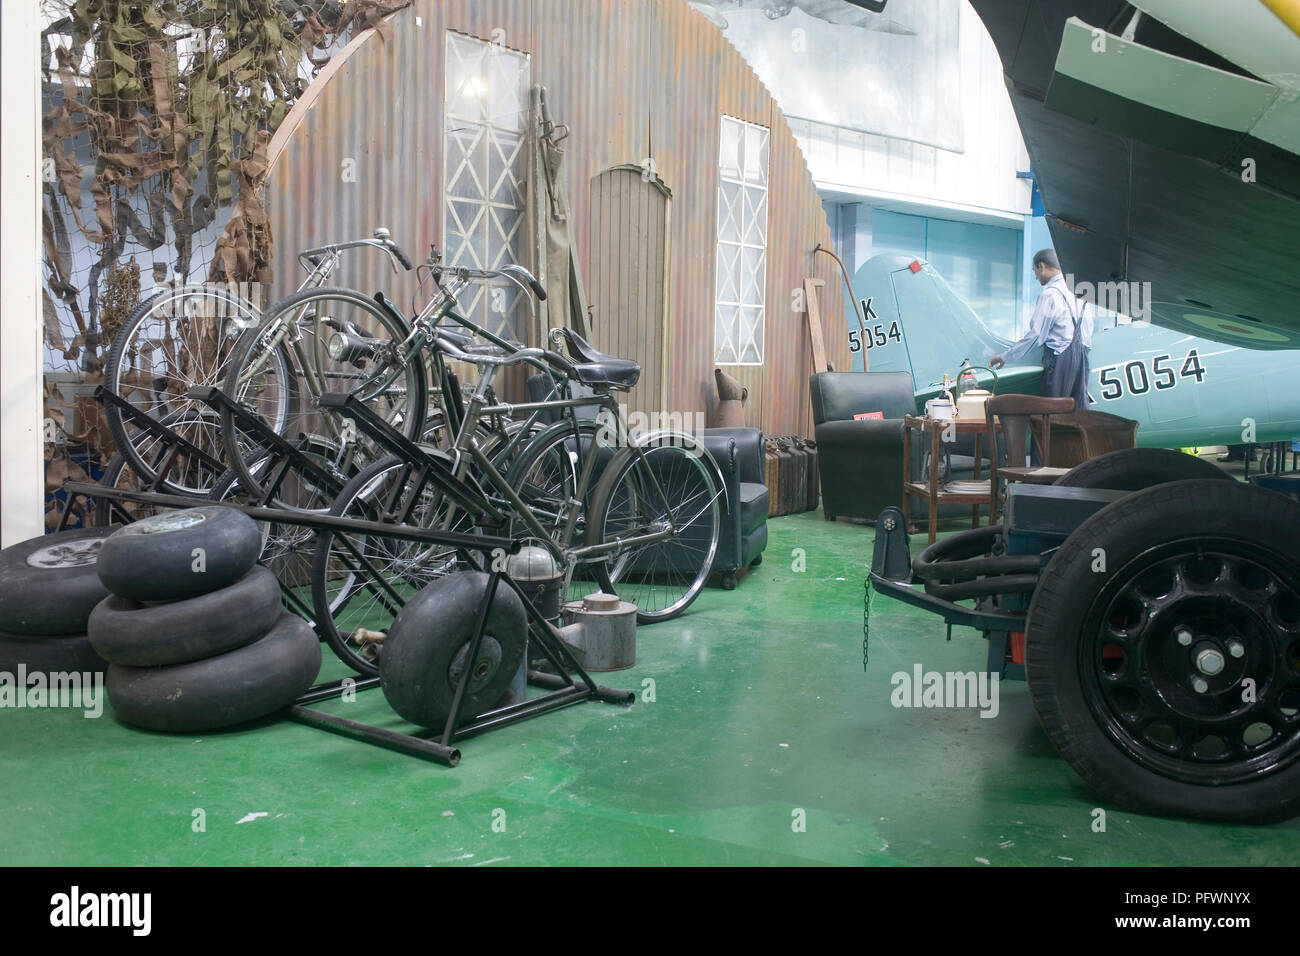 Aircraft tyres, bicycles and replica hangar in Merston Hall at Tangmere militray aviation museum - Stock Image